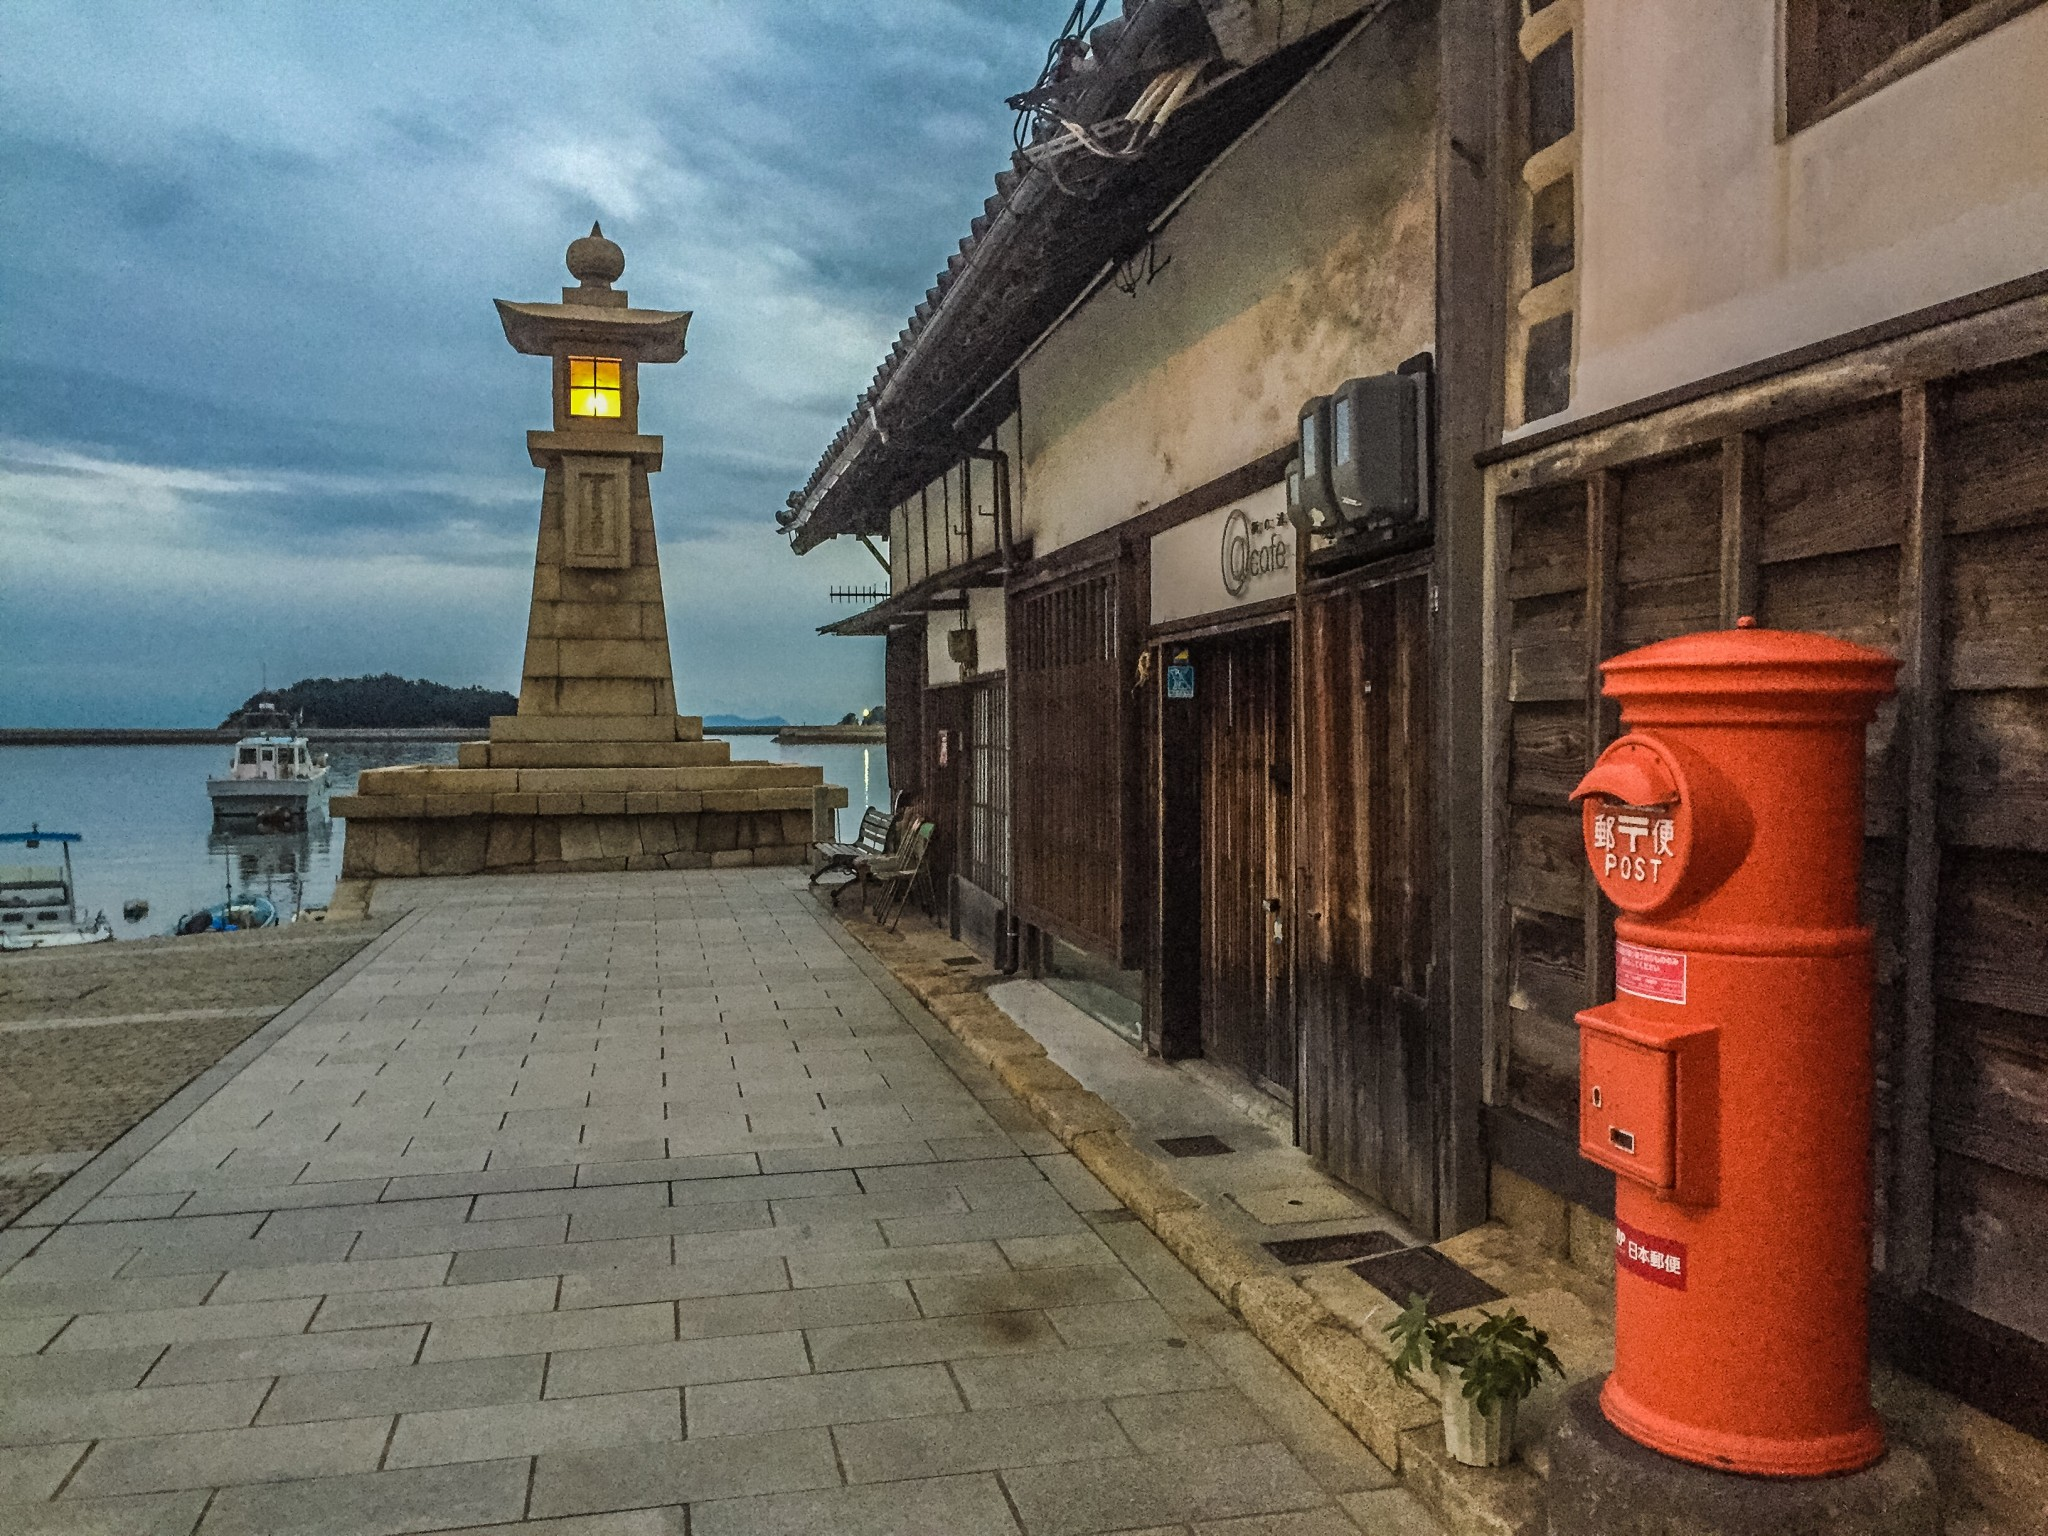 Tomonoura, the Port City of Spiced Sake and Street Cats